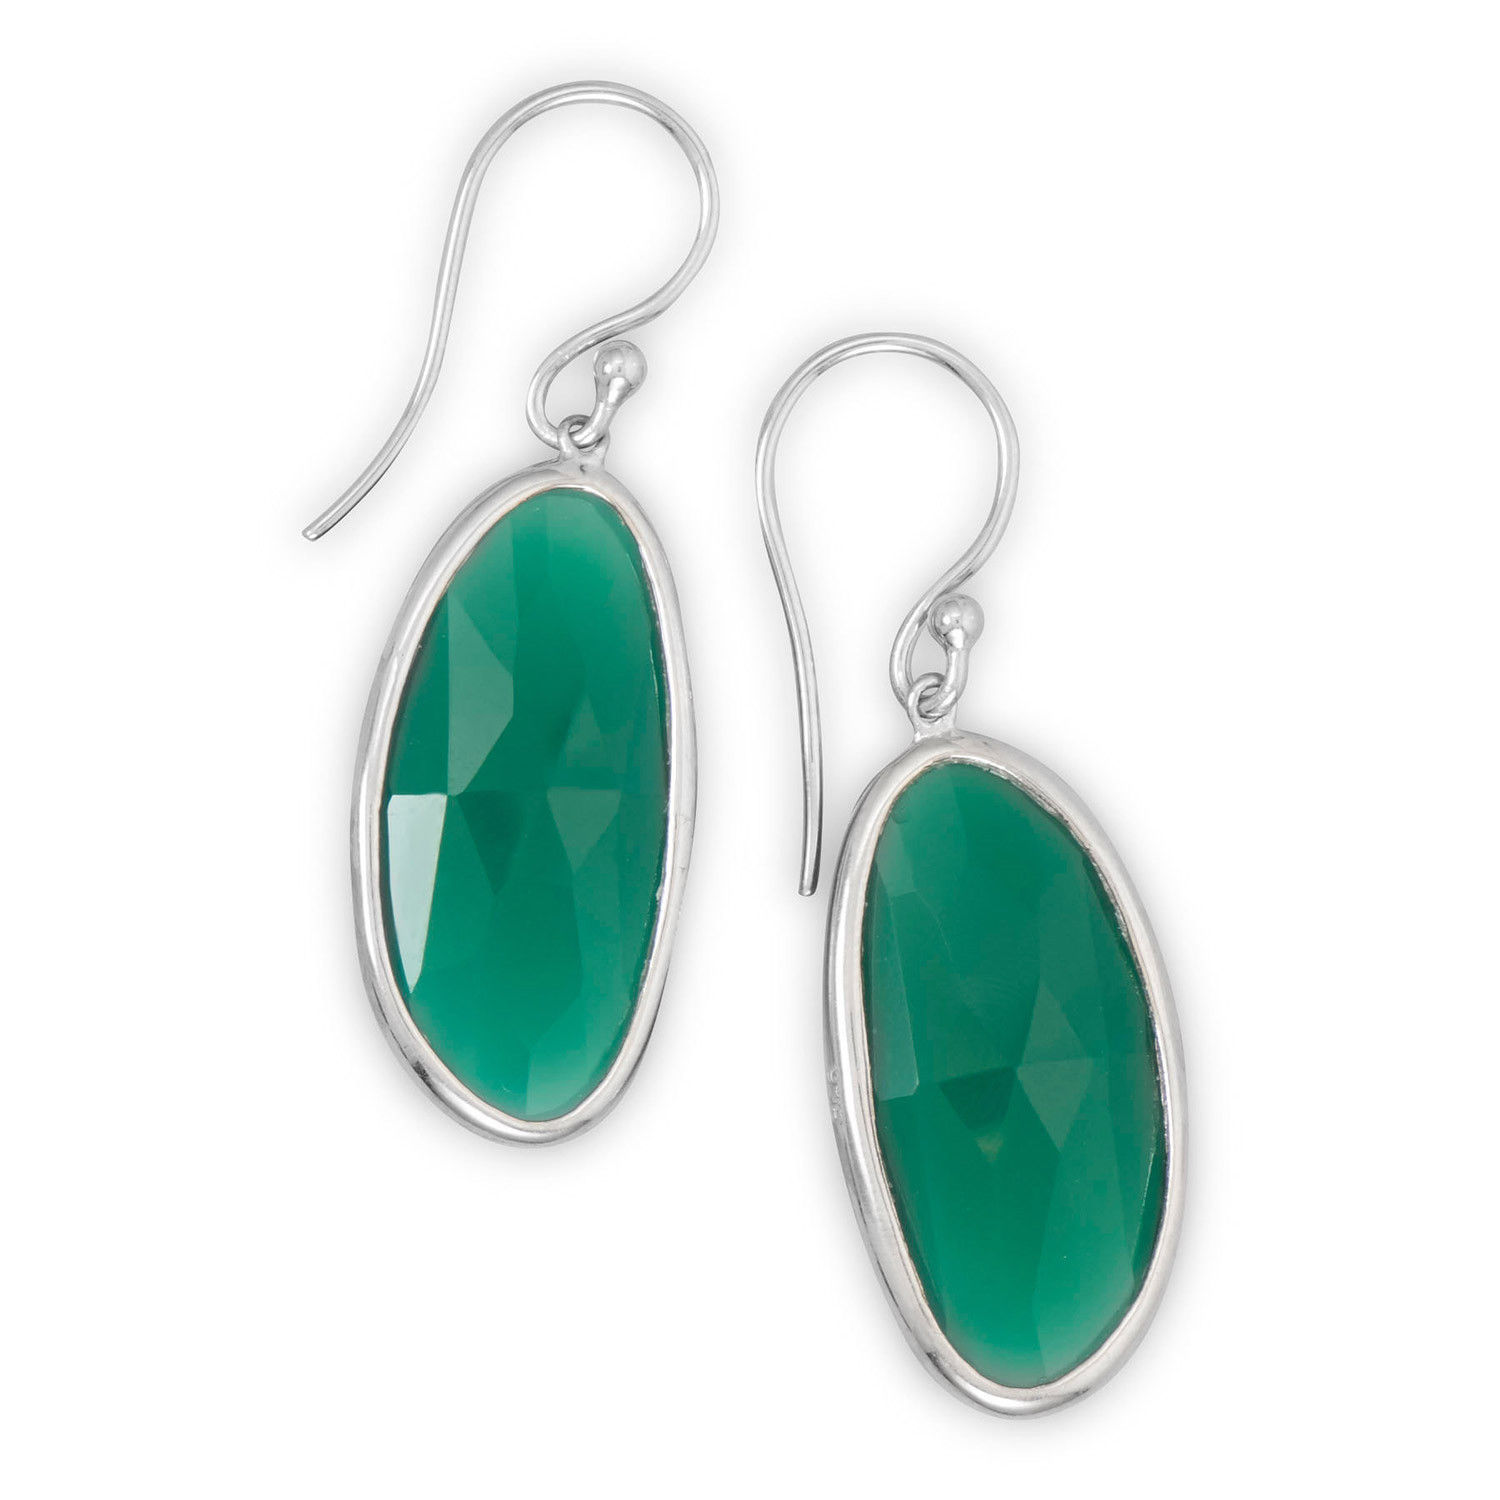 Rhodium Plated Silver Green Onyx Earrings